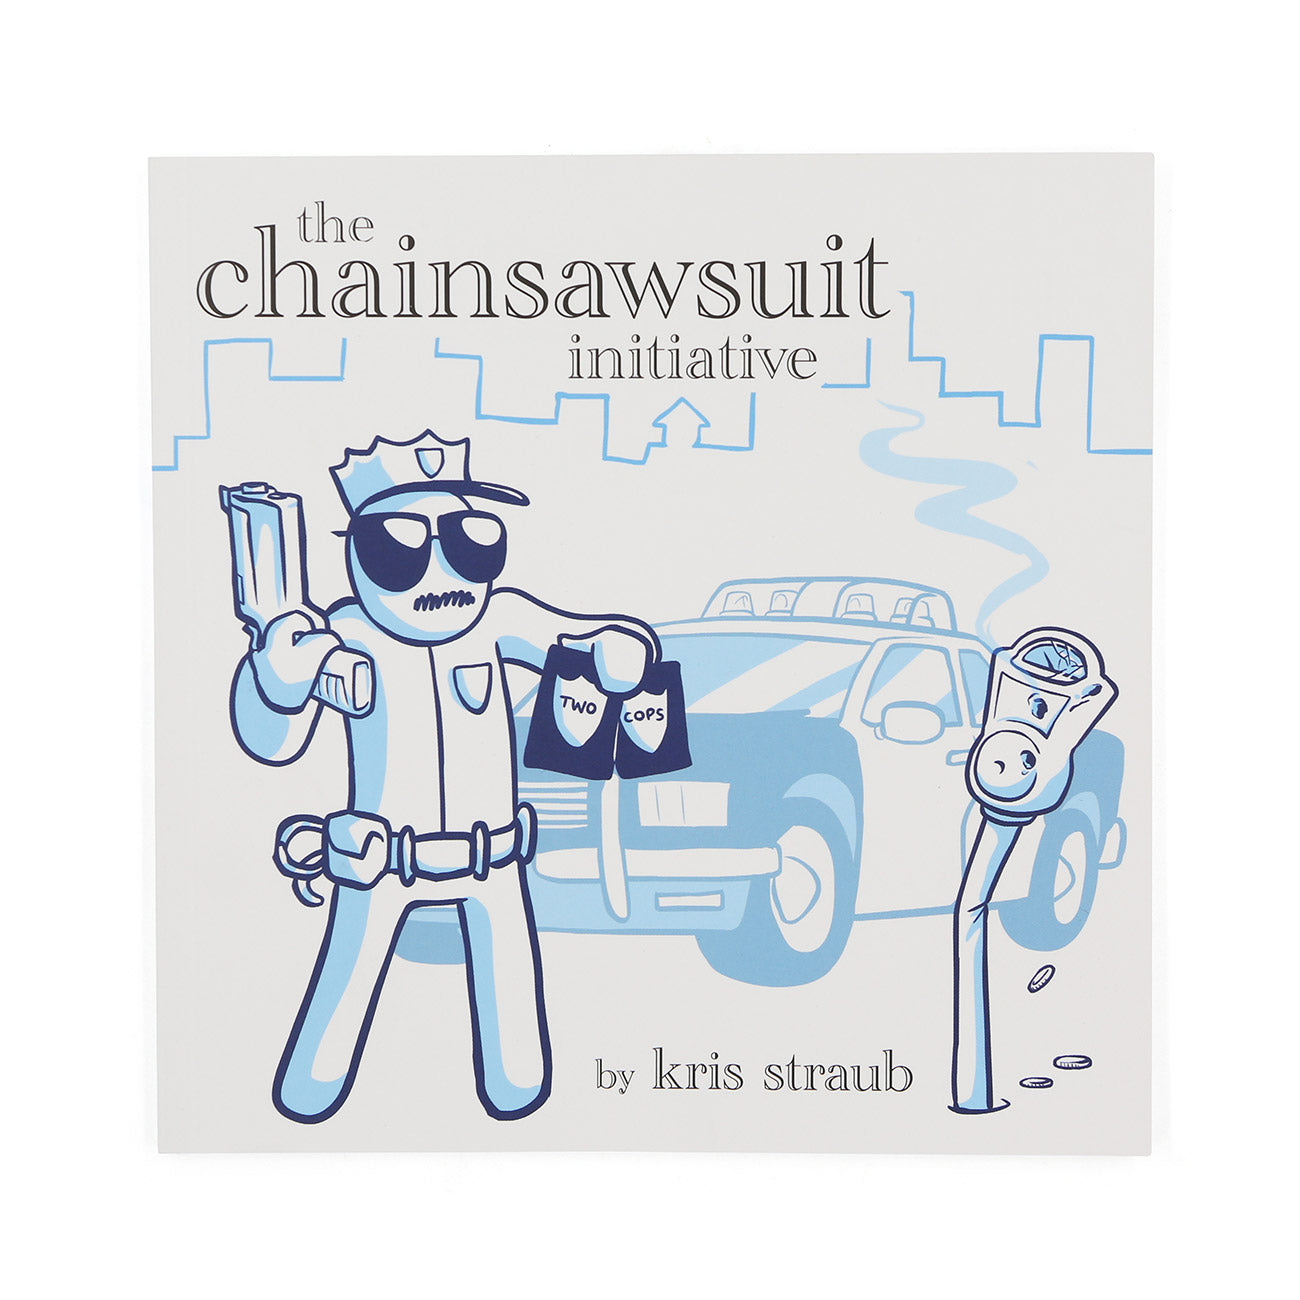 The Chainsawsuit Initiative